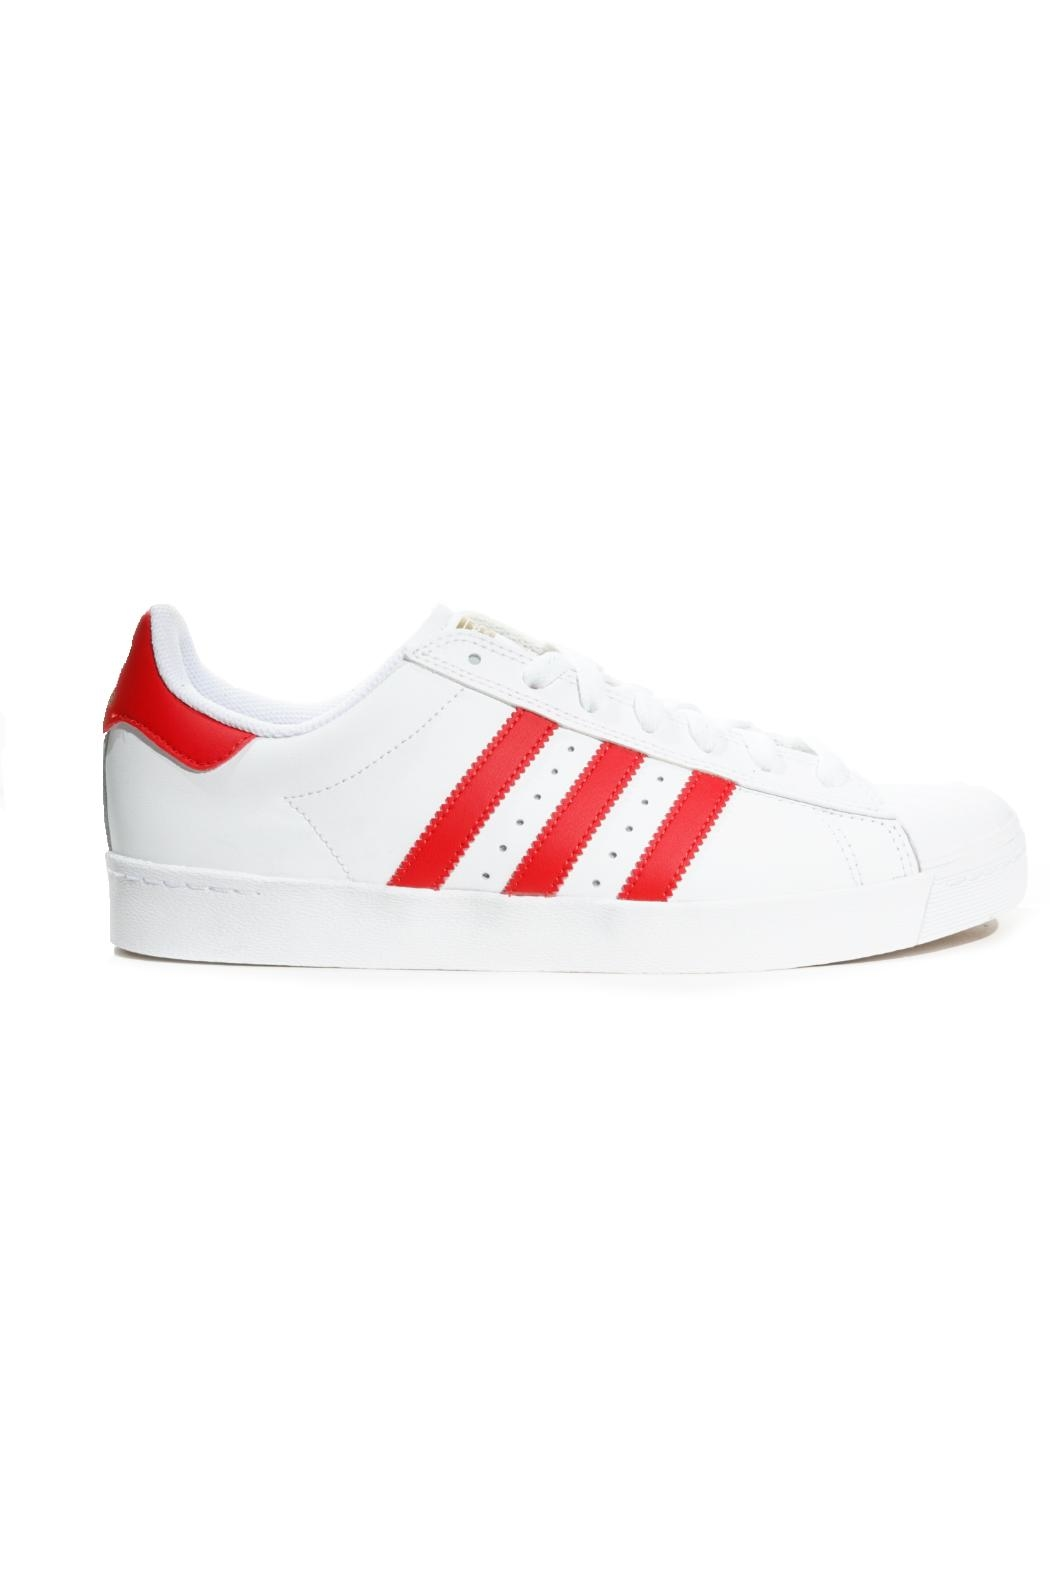 adidas White/red Superstar Adidas - Front Cropped Image